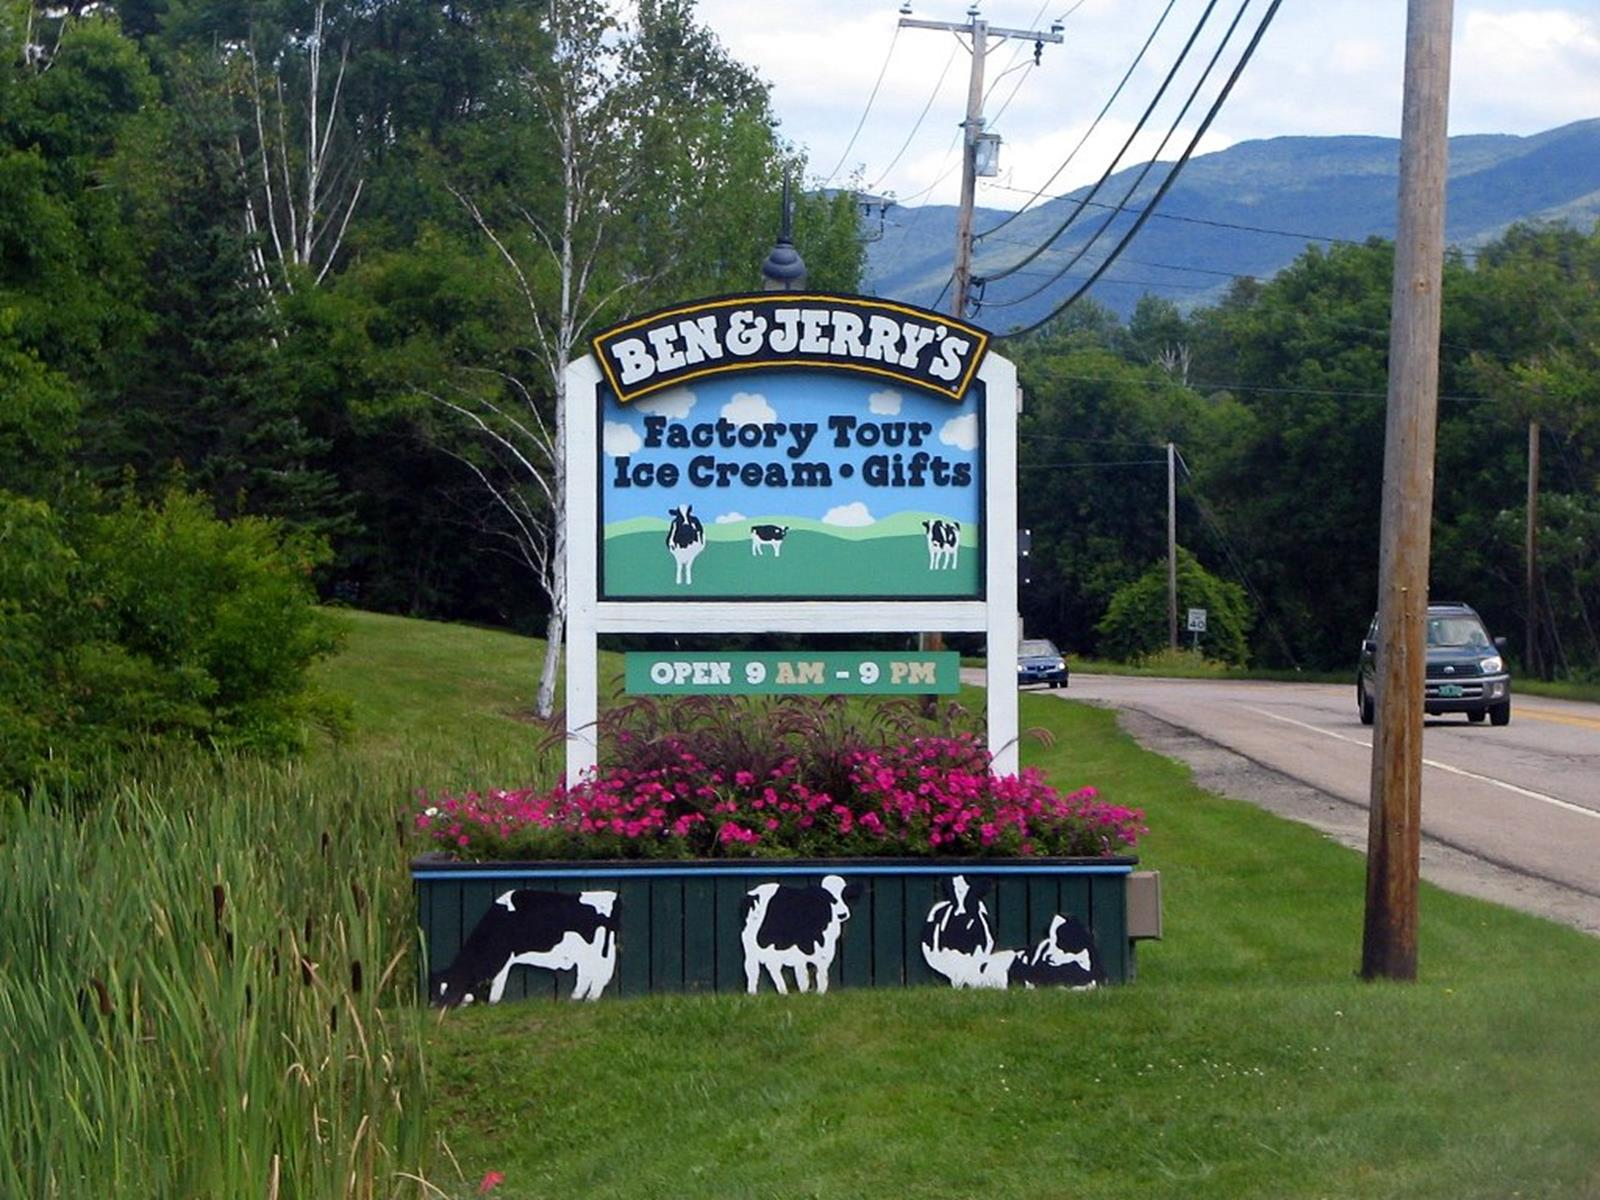 Ben and Jerry's factory sign. Credit: SNSAnchor at en.wikipedia